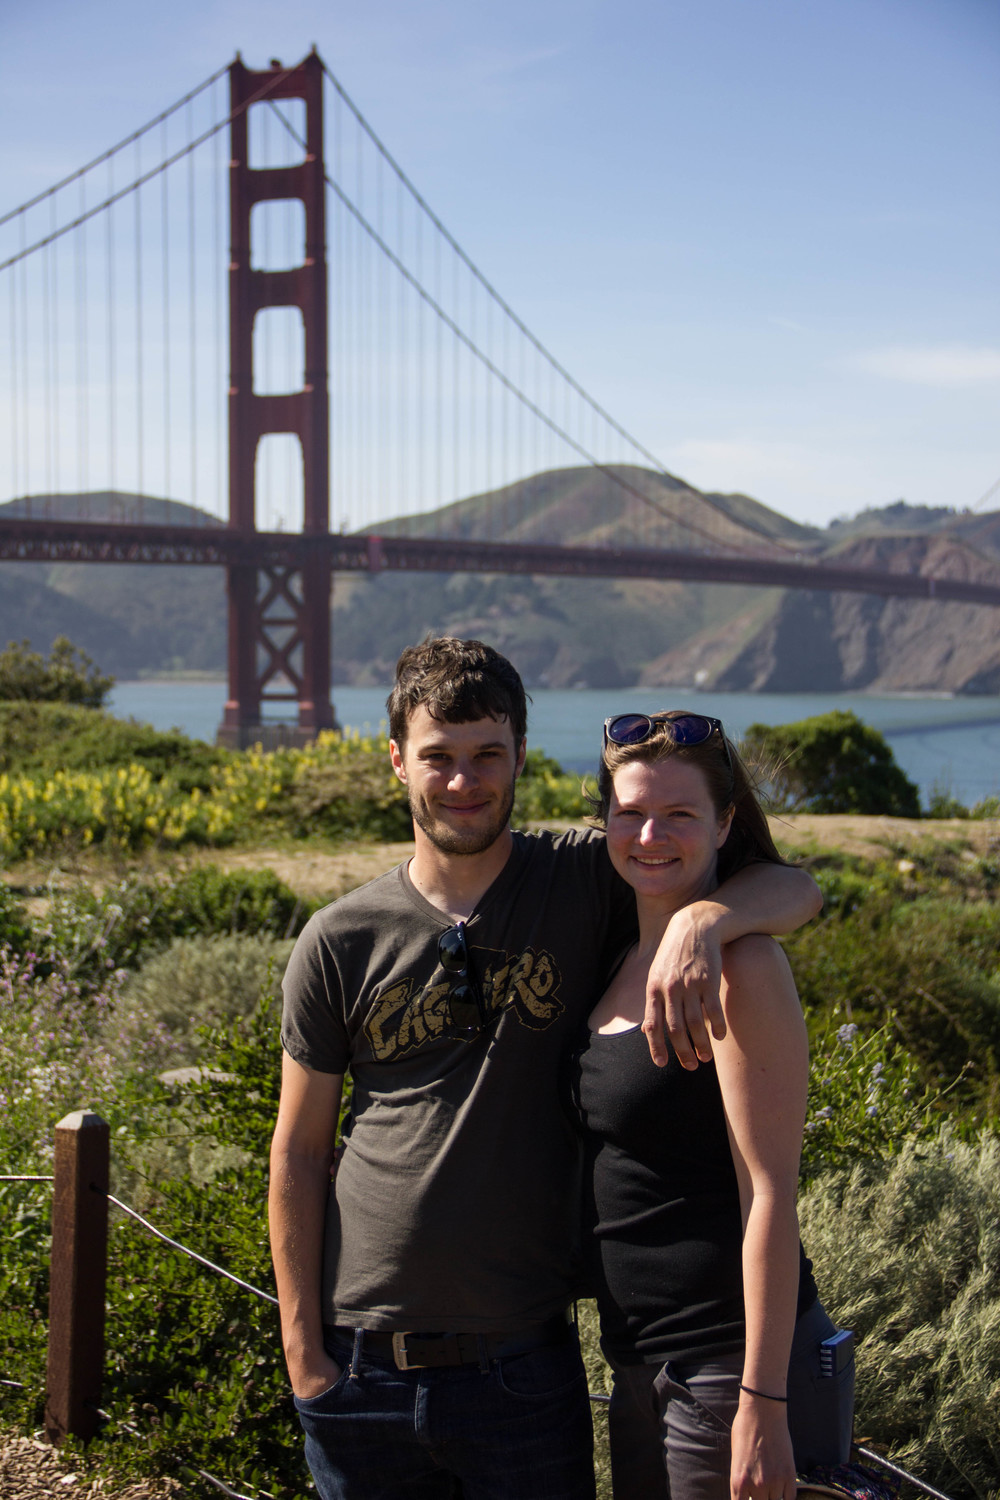 Golden Gate Bridge picture, check!